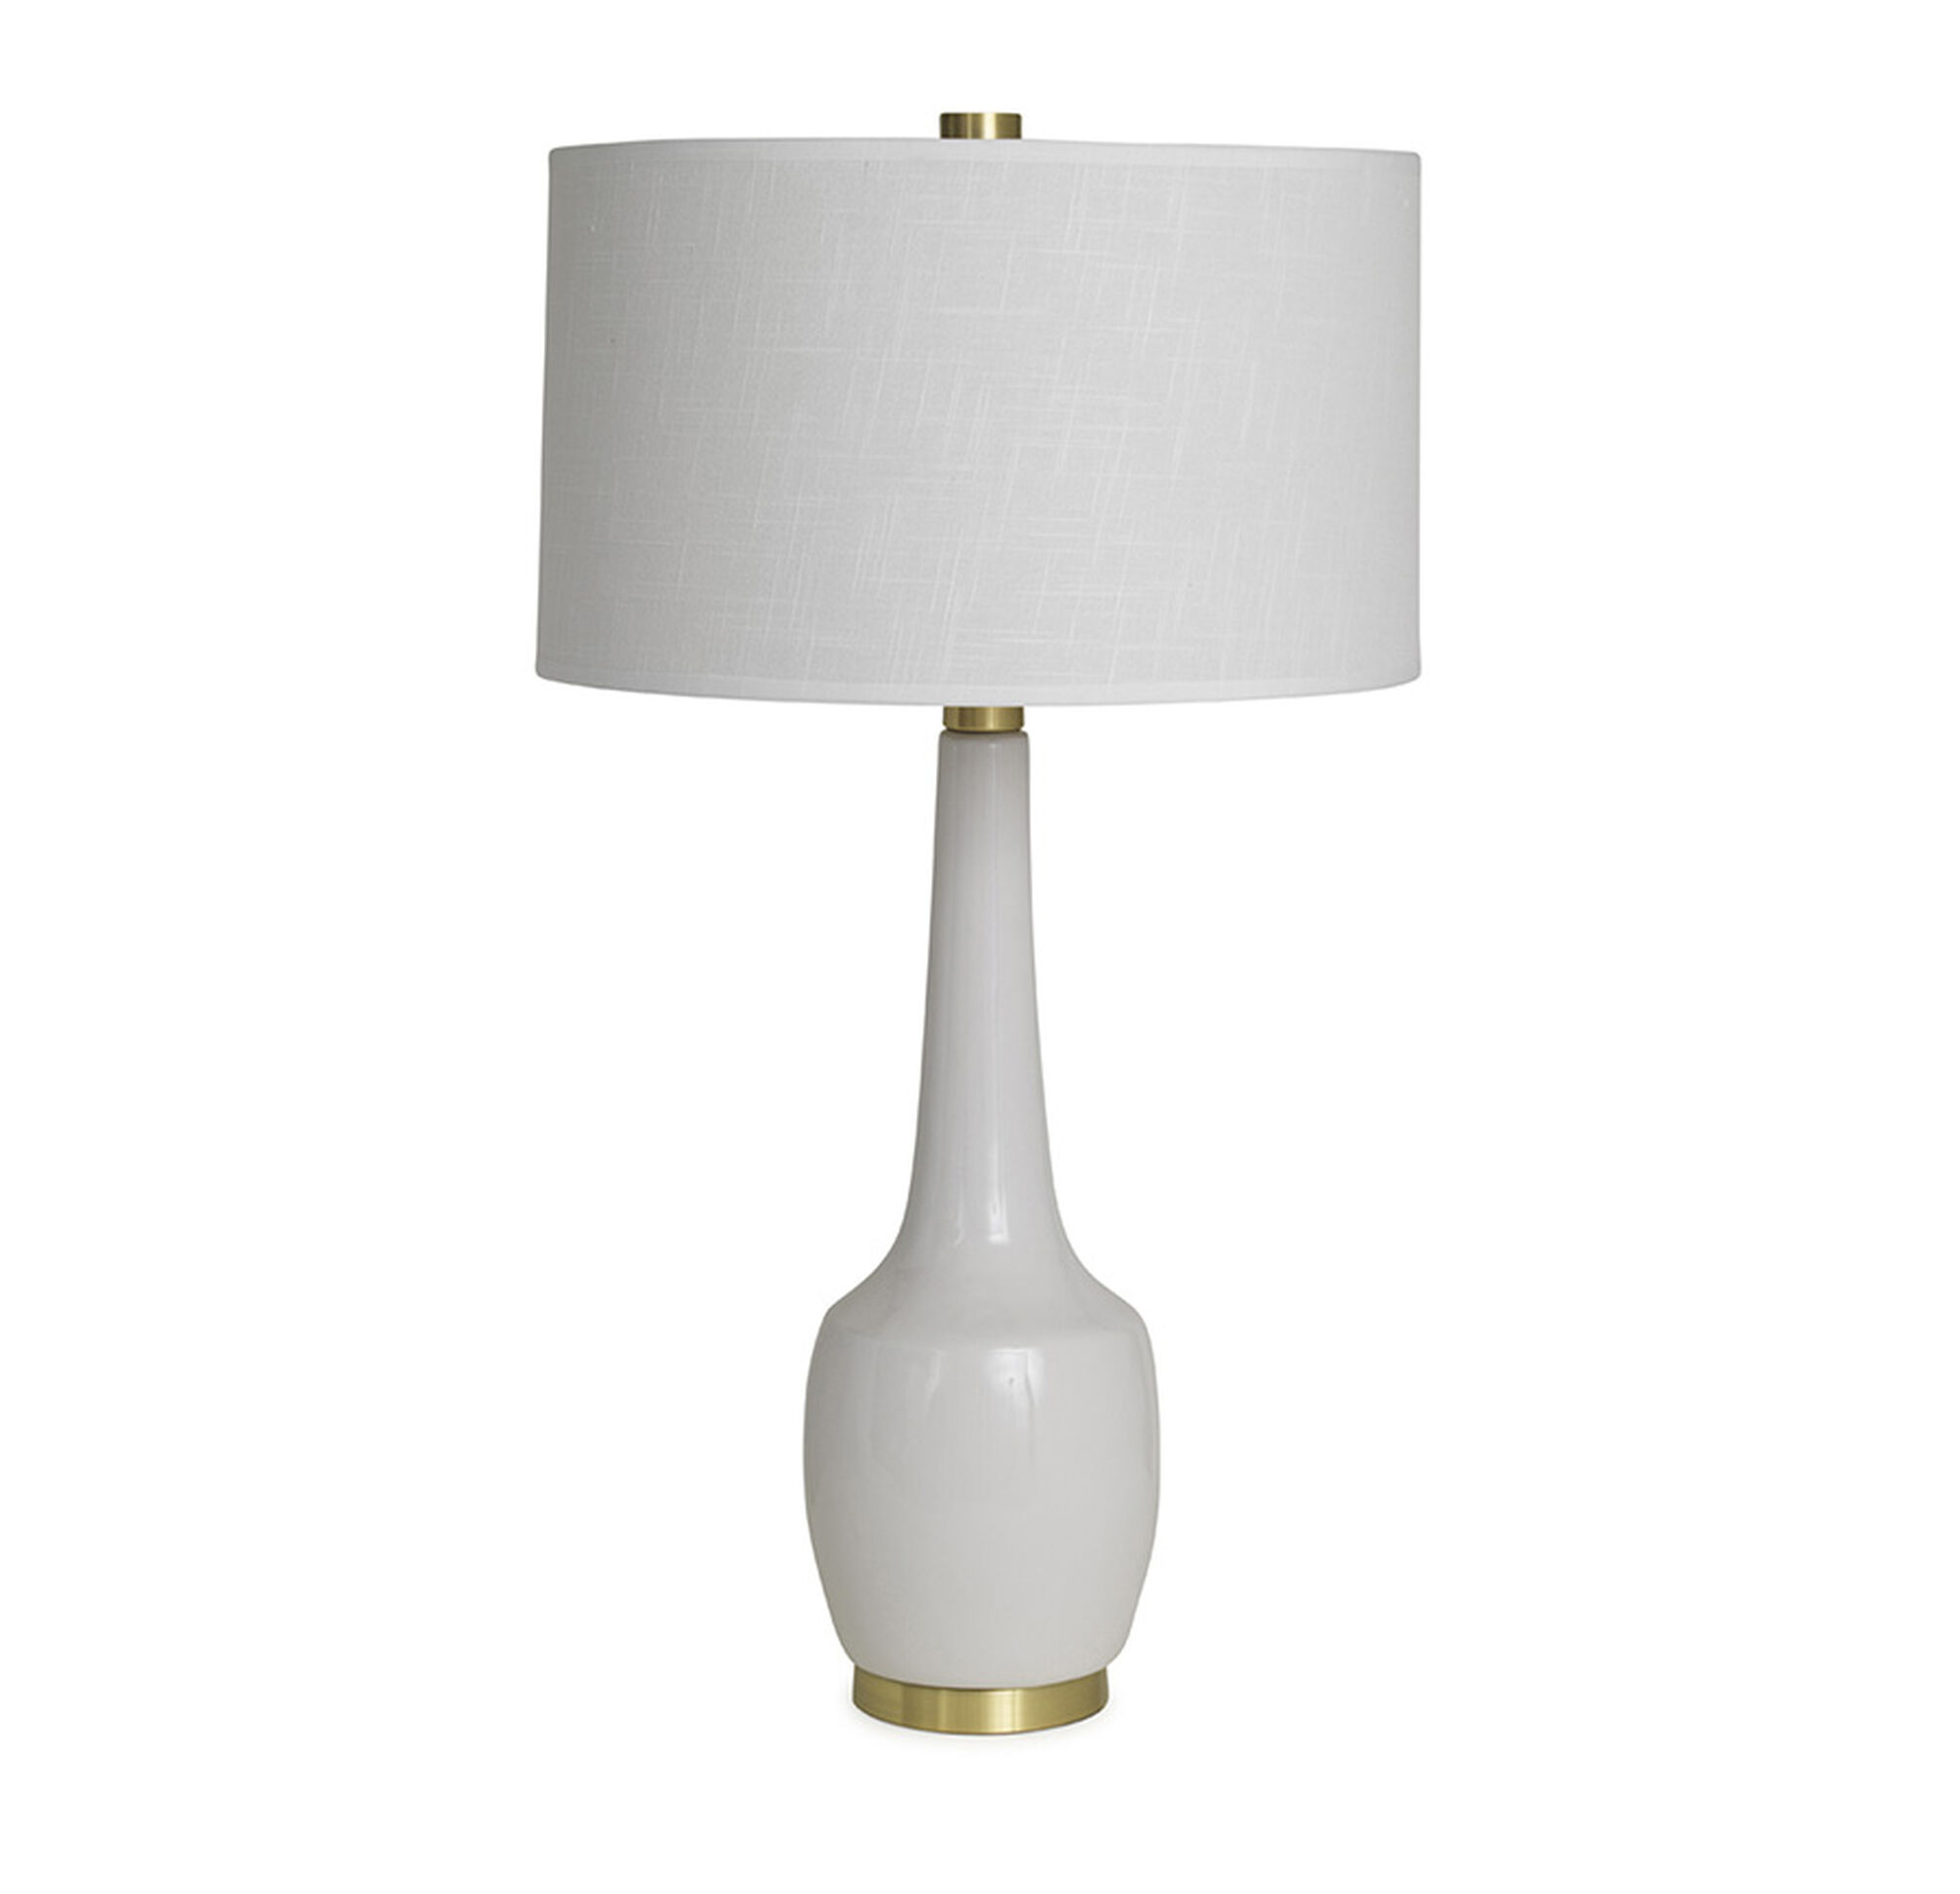 Diy rope table lamp best inspiration for table lamp argos gold table lamp geotapseo Image collections